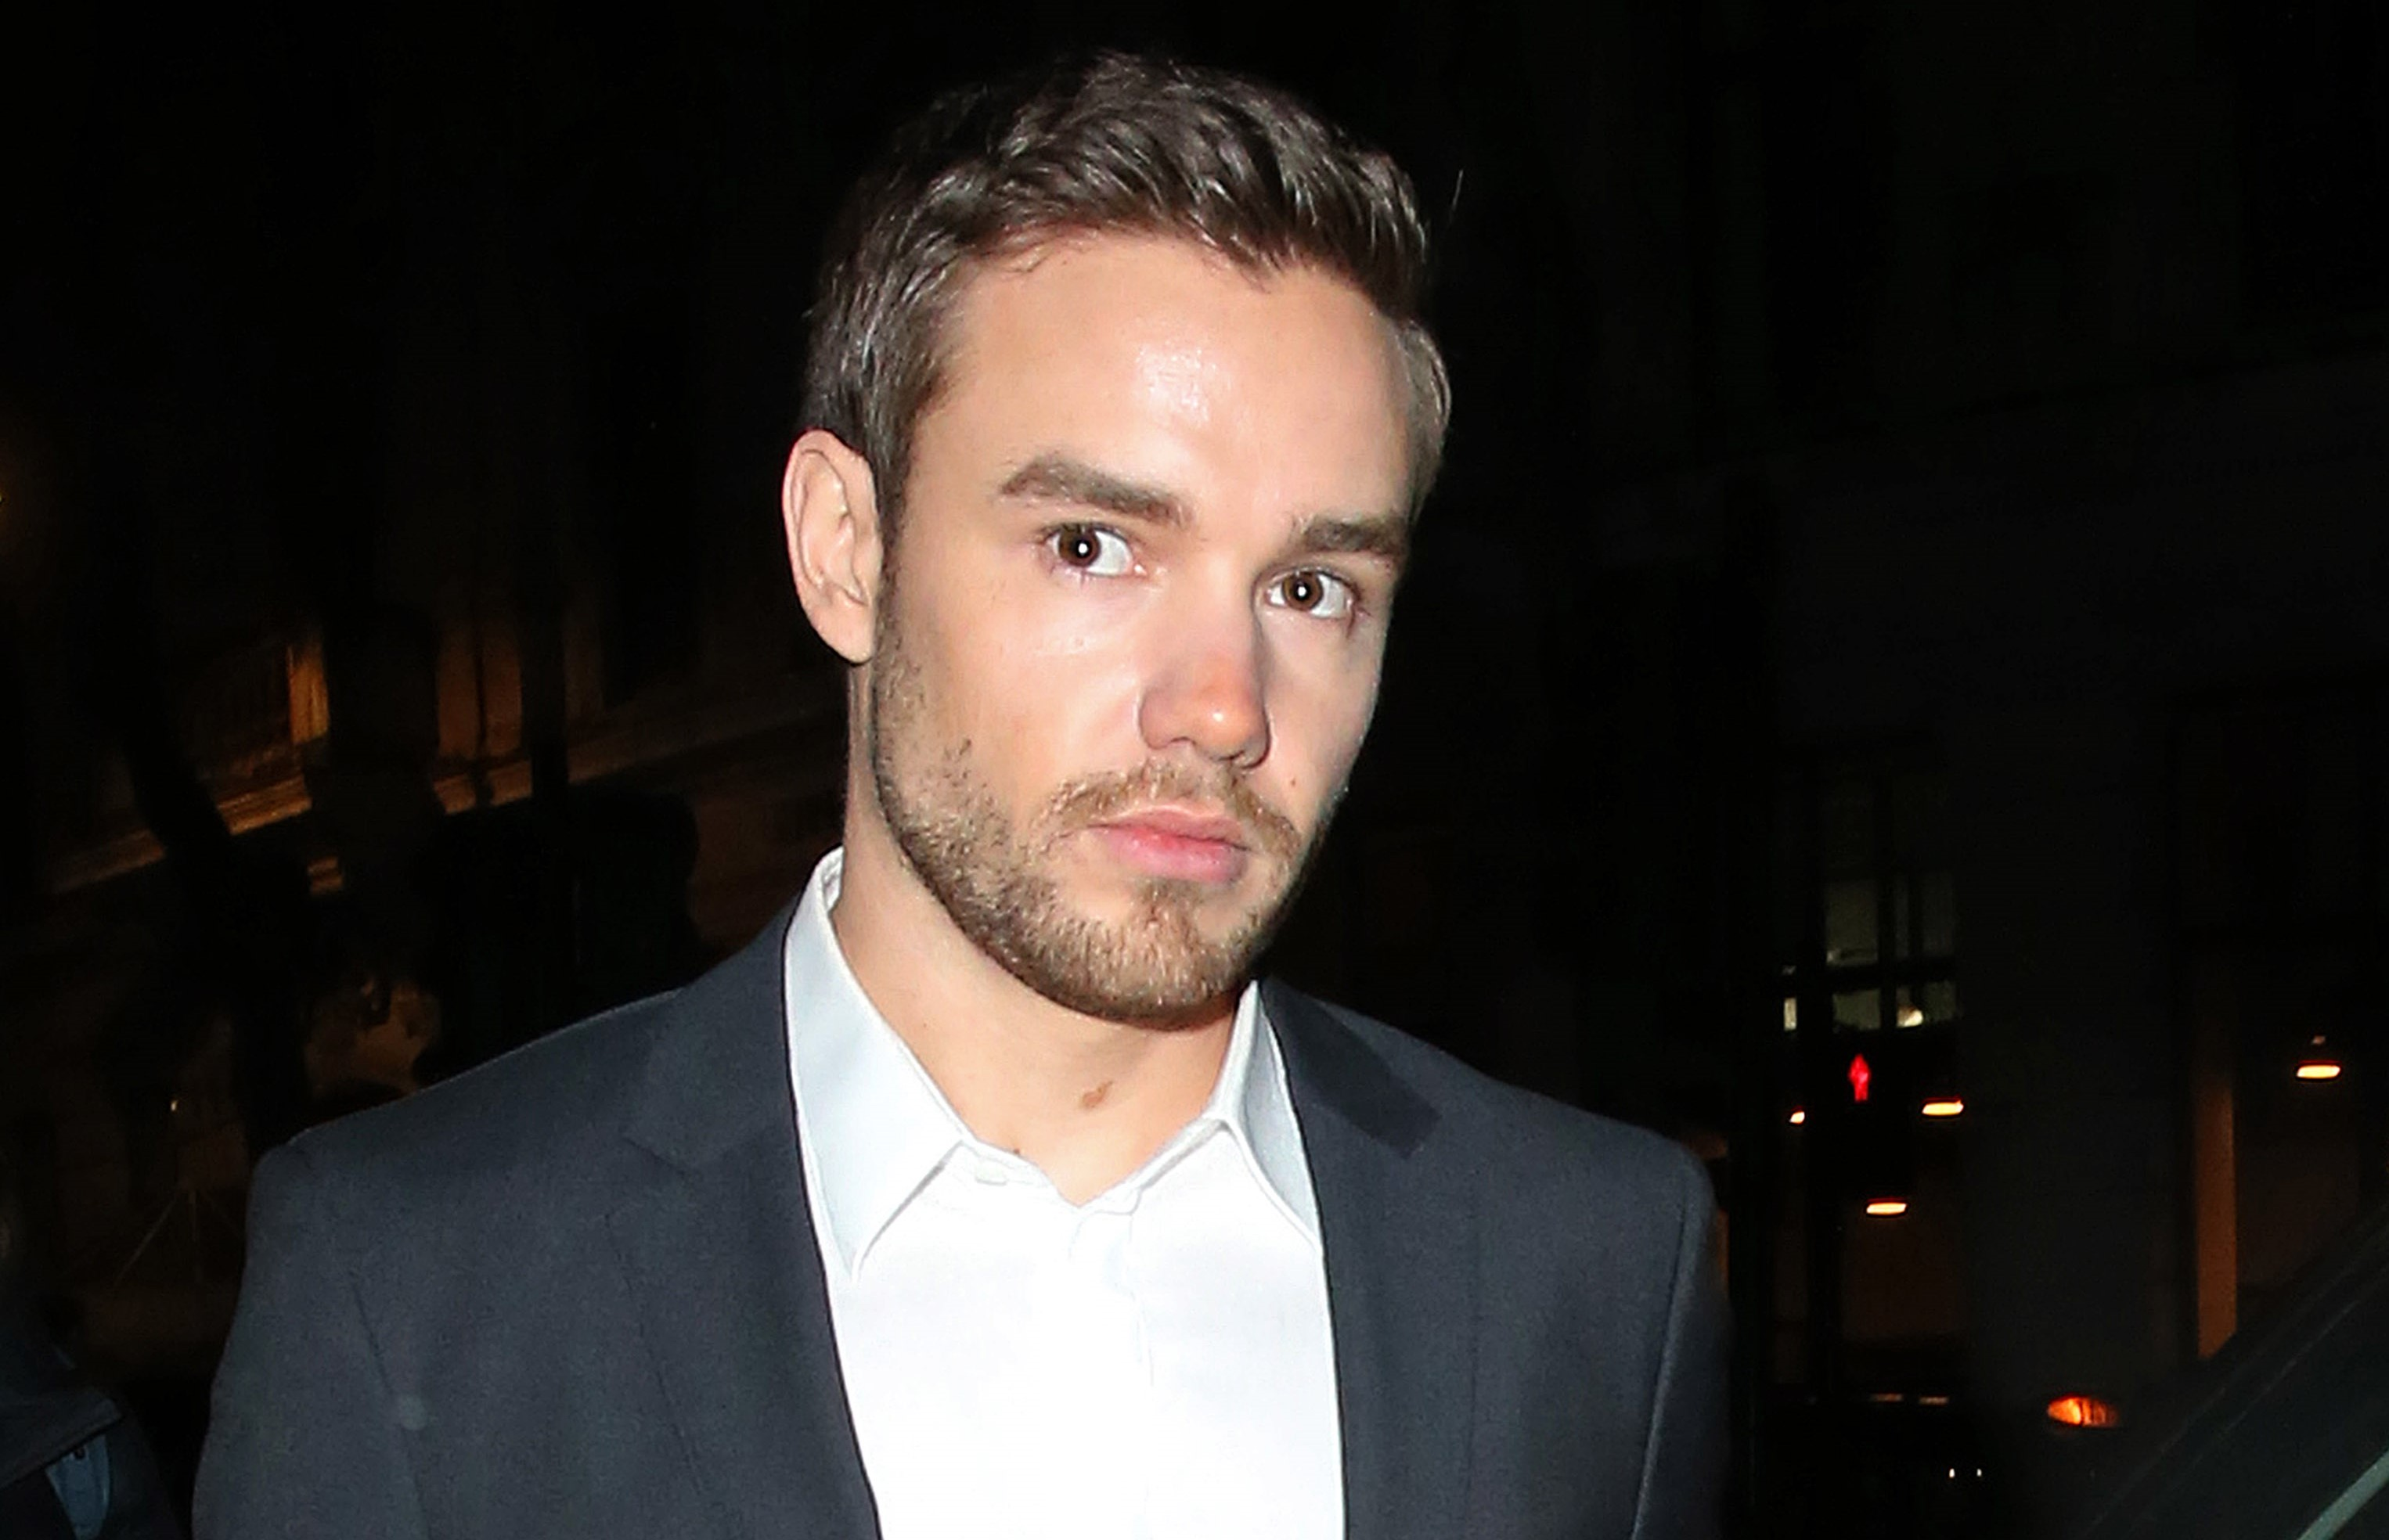 Liam Payne has introduced Maya Henry to his mum